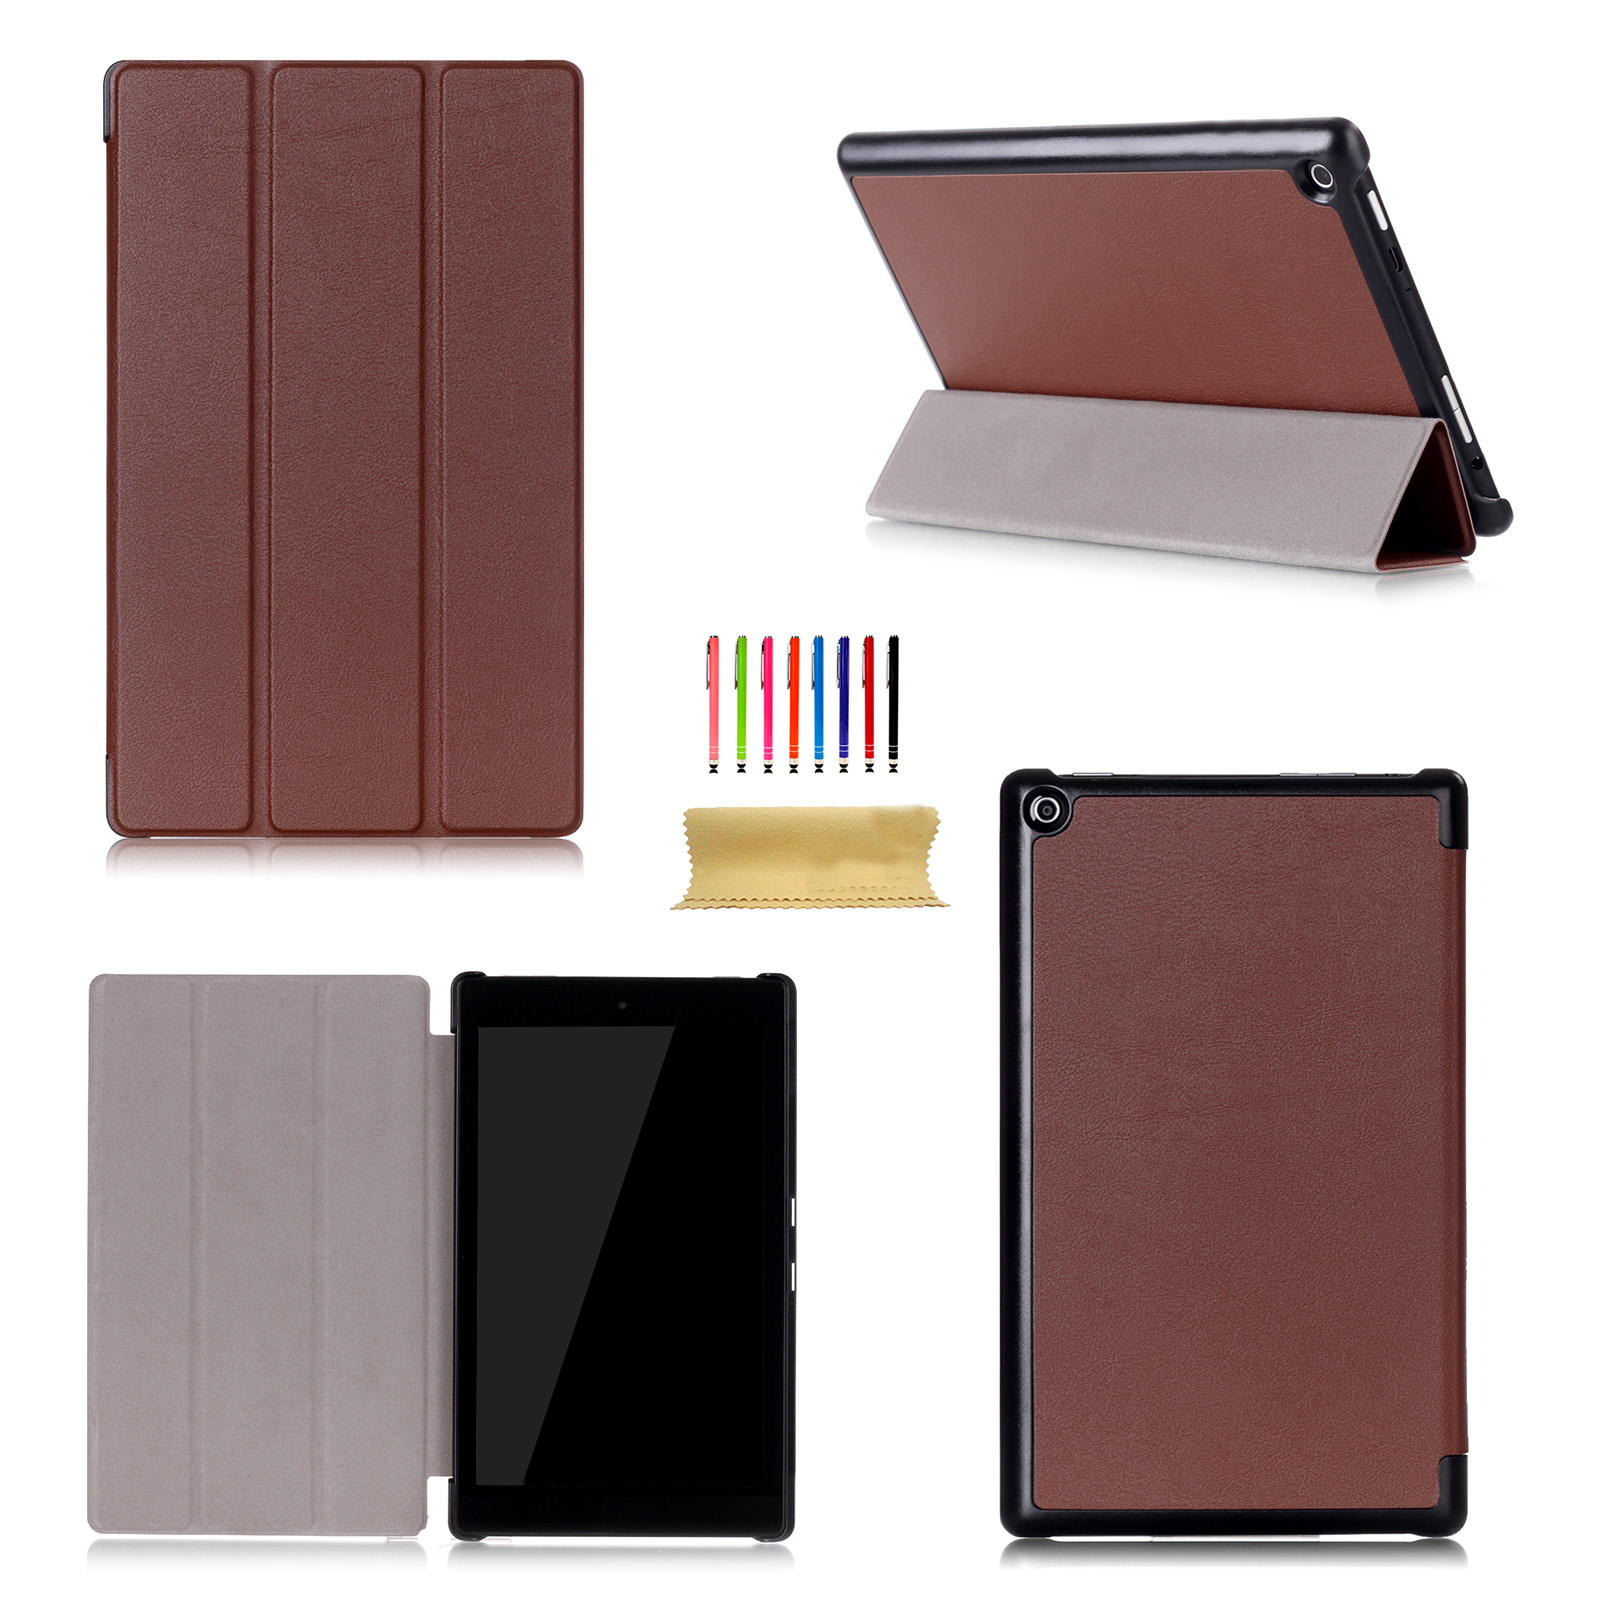 Luxury leather smart cover folio for amazon kindle fire hd for Amazon casa